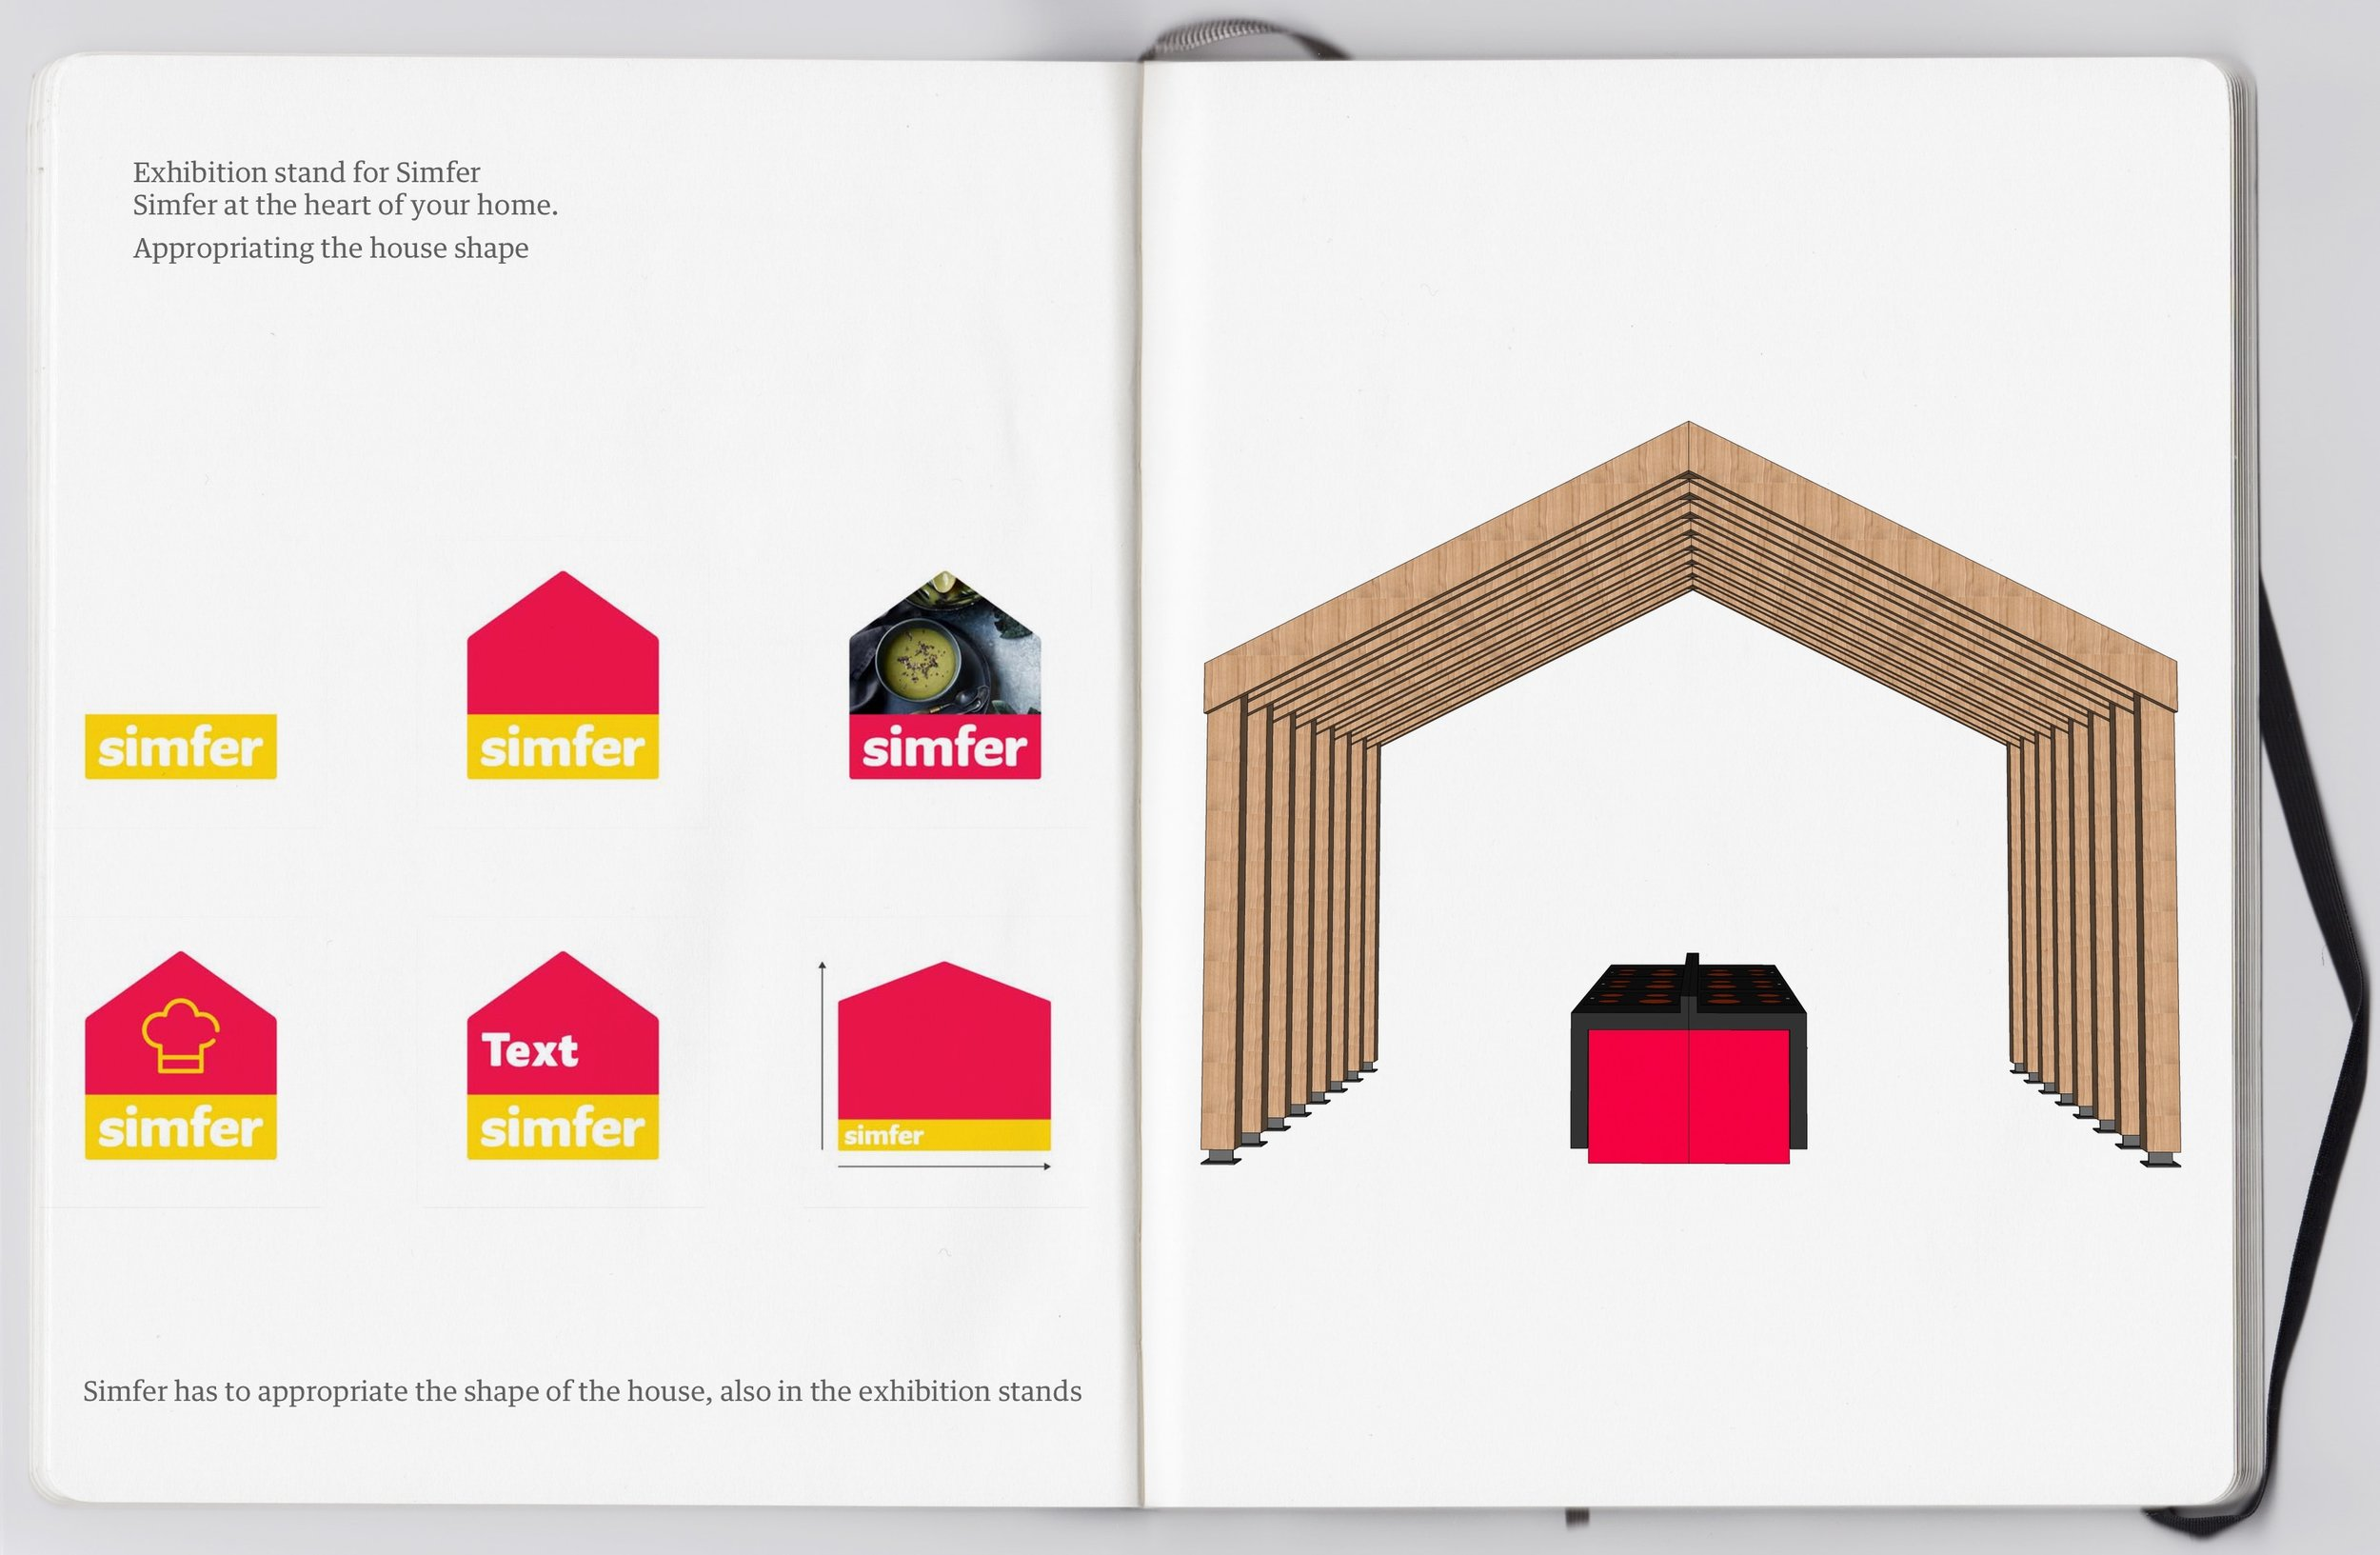 Brand architecture - Simfer at the heart of your home.